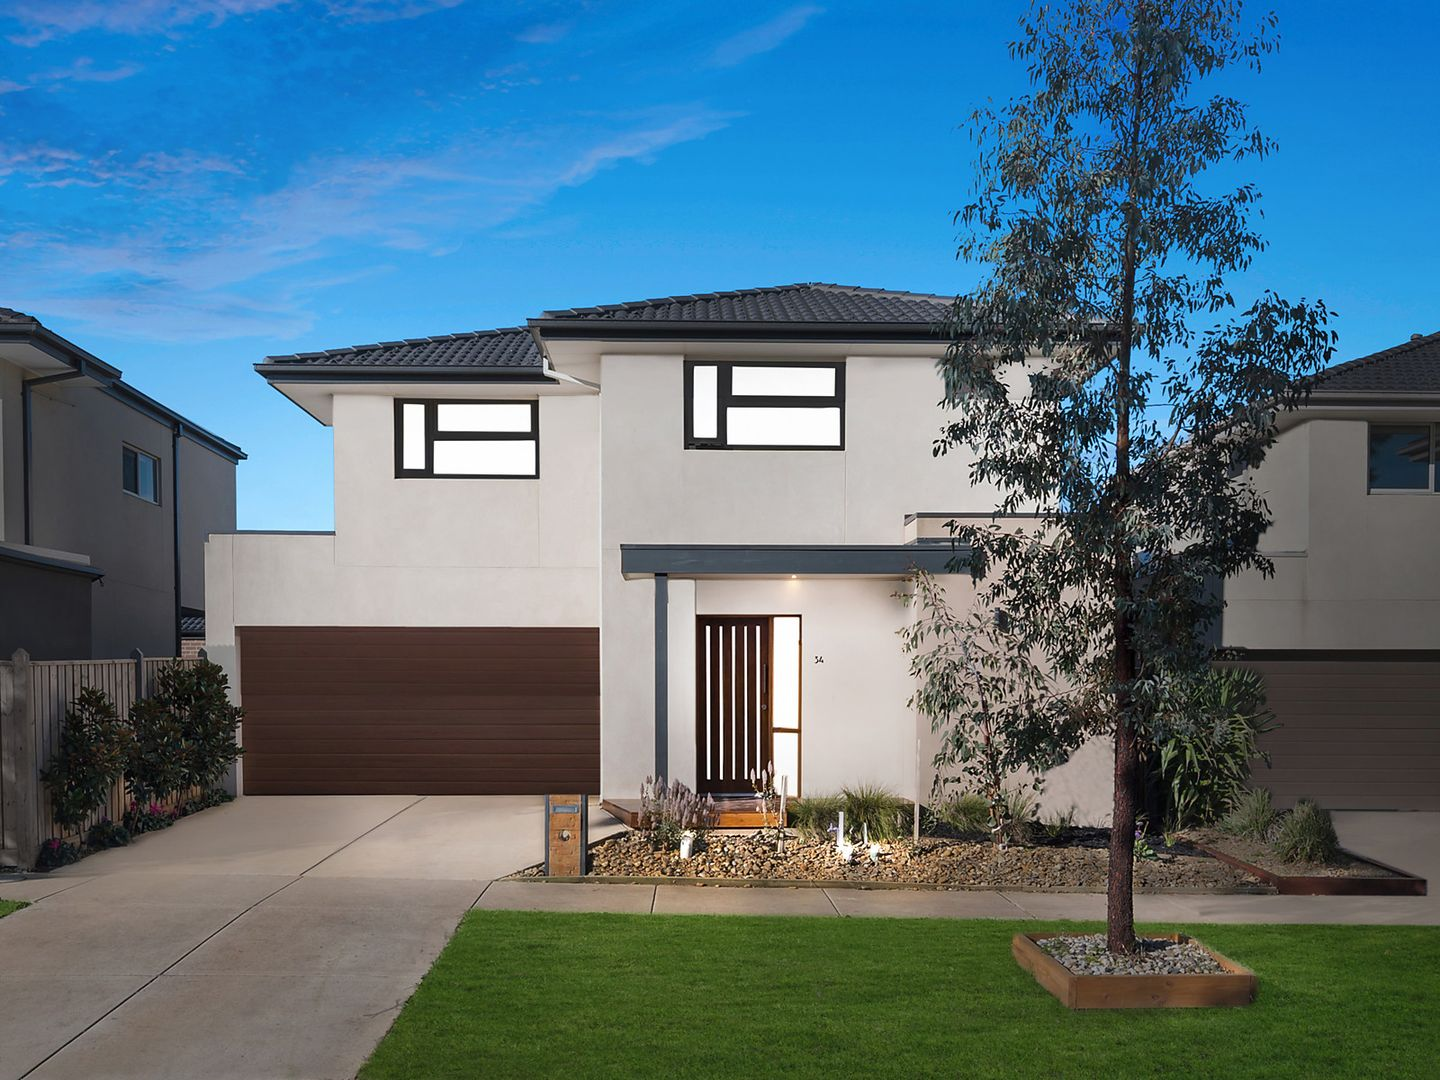 34 Remarkable Drive, Mount Duneed VIC 3217, Image 0